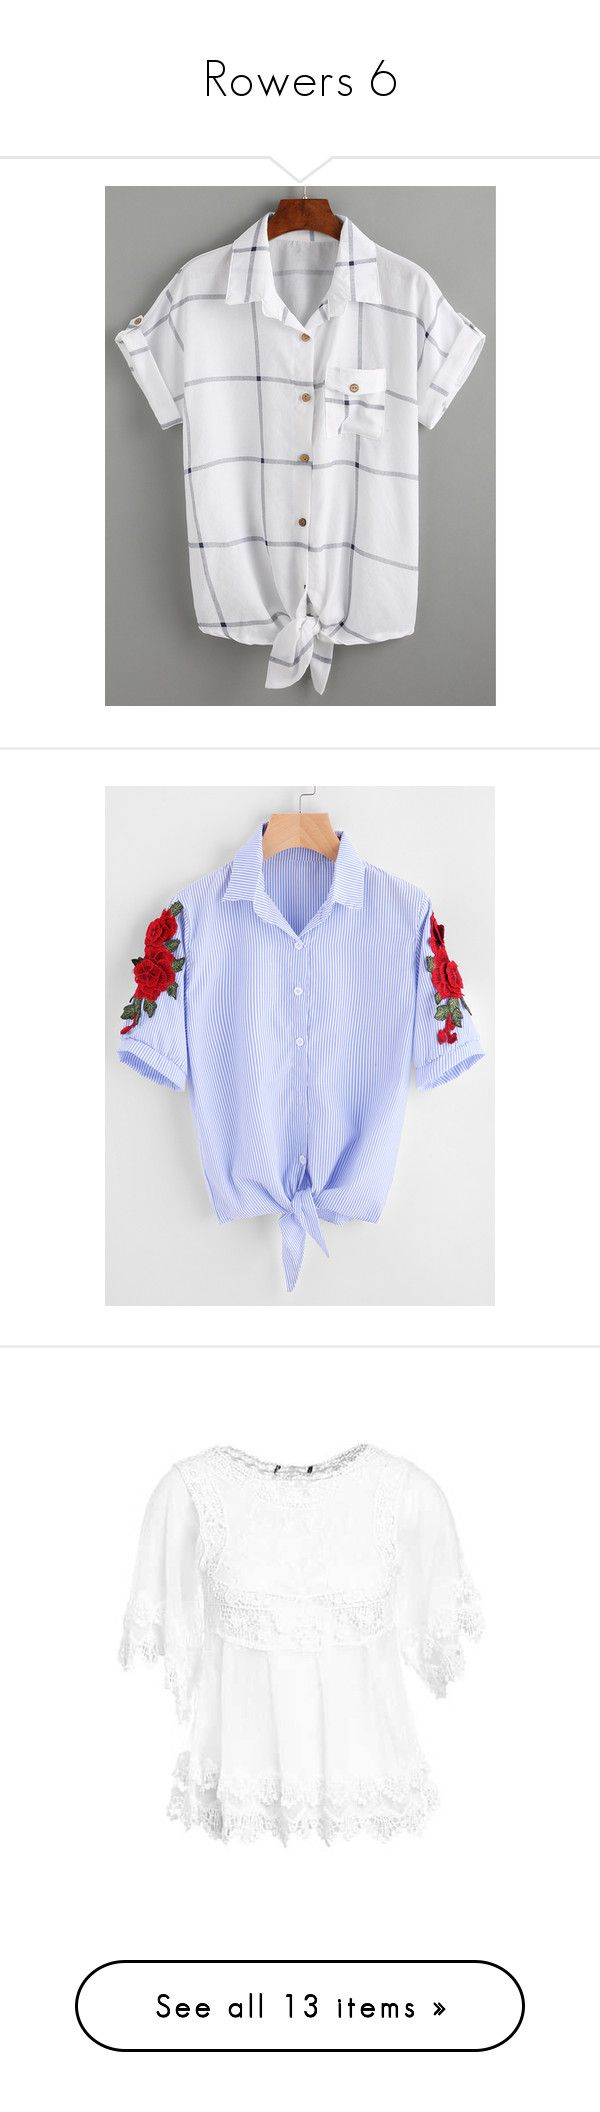 """""""Rowers 6"""" by laumariborche ❤ liked on Polyvore featuring tops, blouses, roll sleeve blouse, collar blouse, white blouses, white short sleeve top, embellished collar blouse, blue, embroidery blouses and blue striped blouse"""